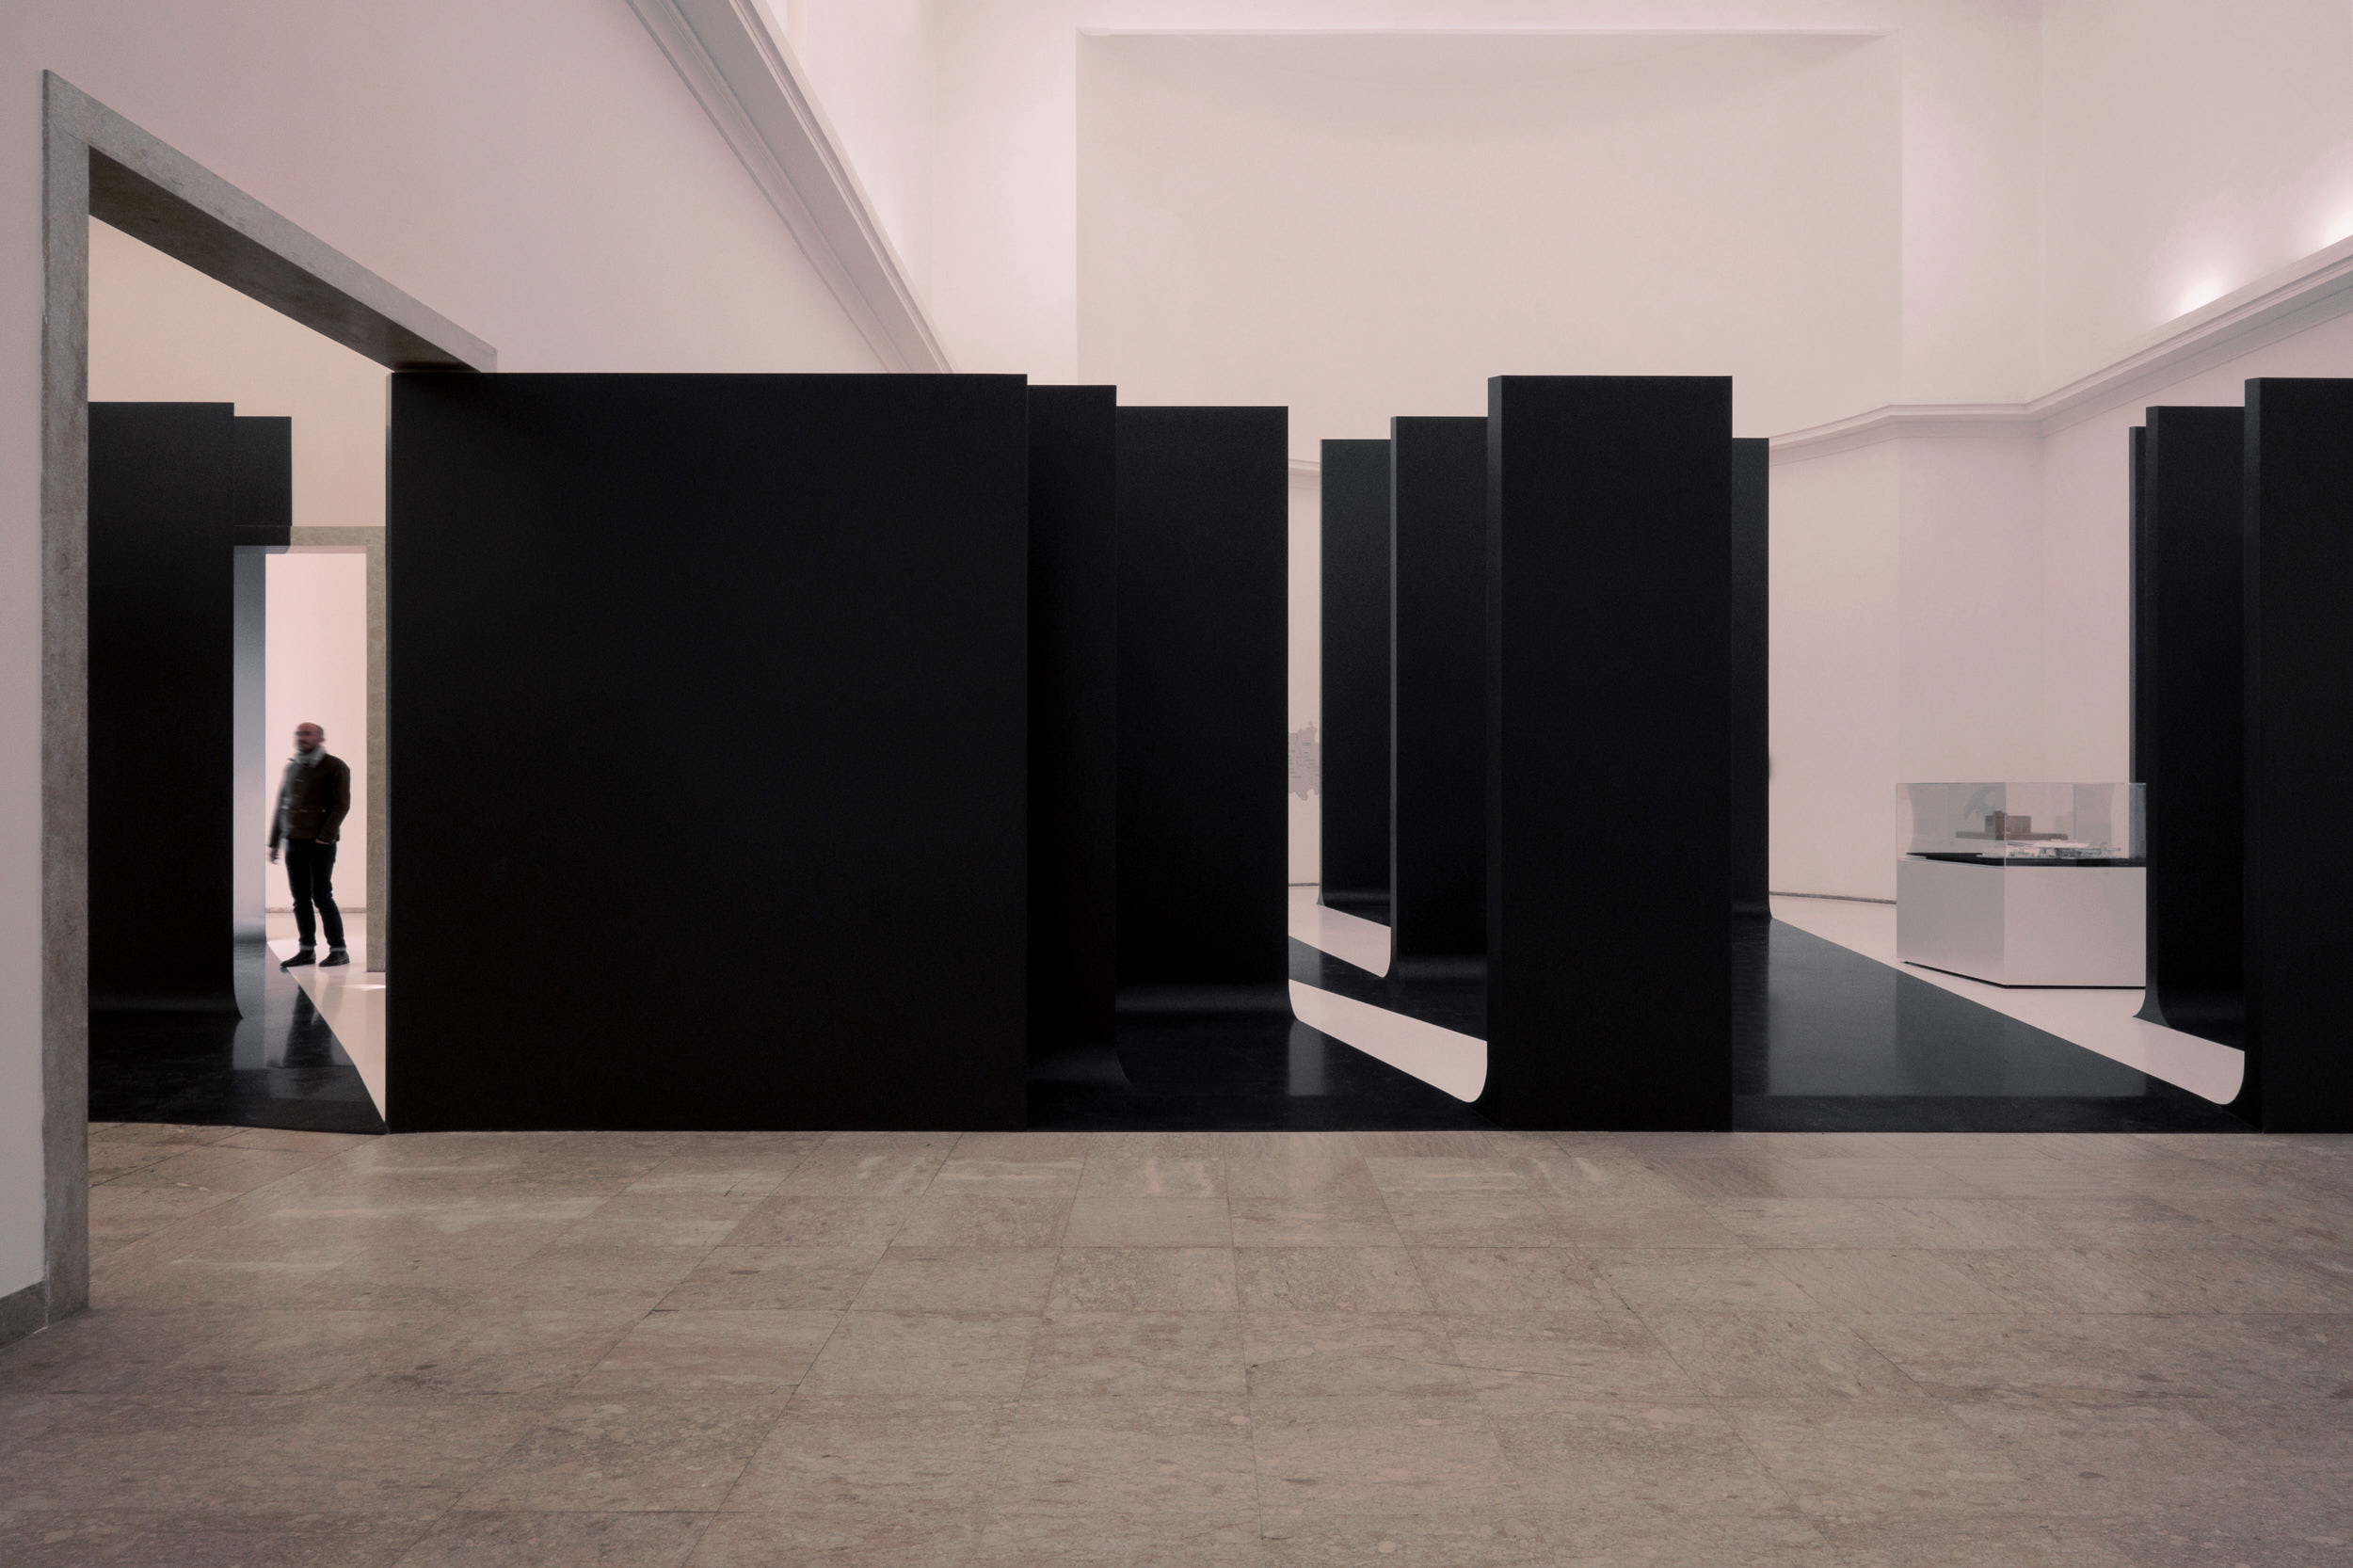 The German Pavilion: Unbuilding Walls curated by GRAFT and Marianne Birthler